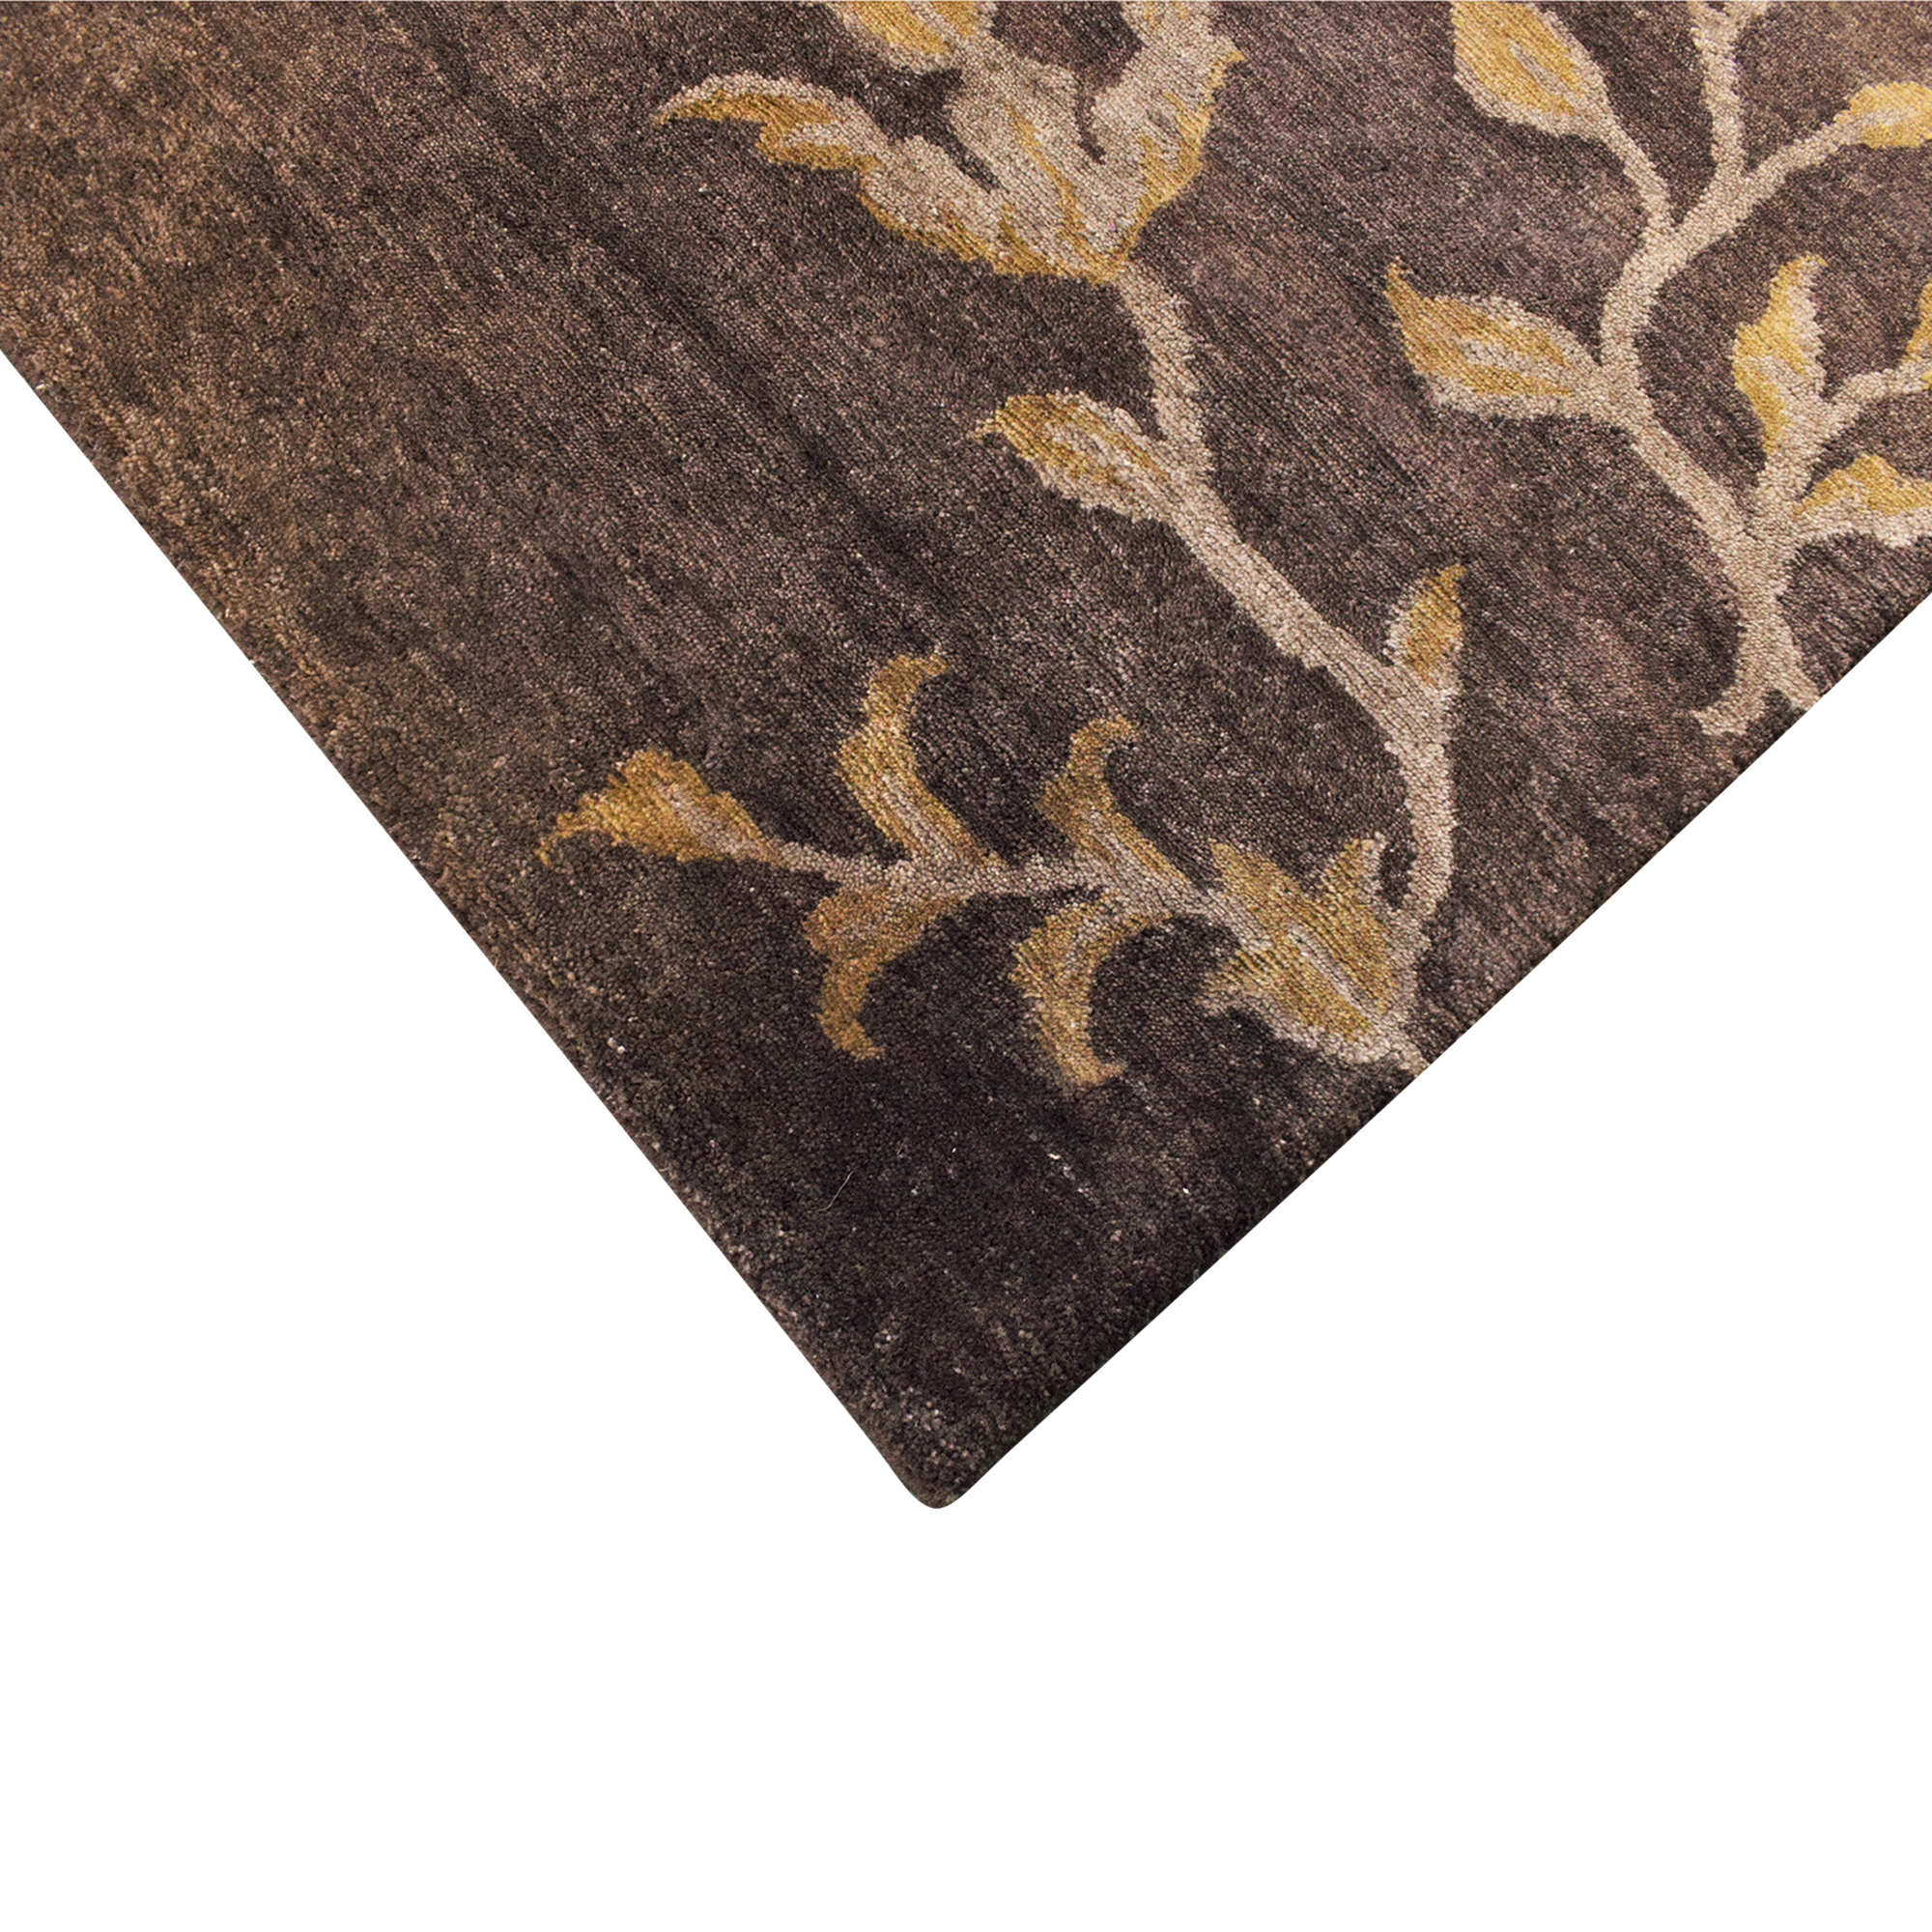 Feizy Feizy Botanical Style Area Rug ct